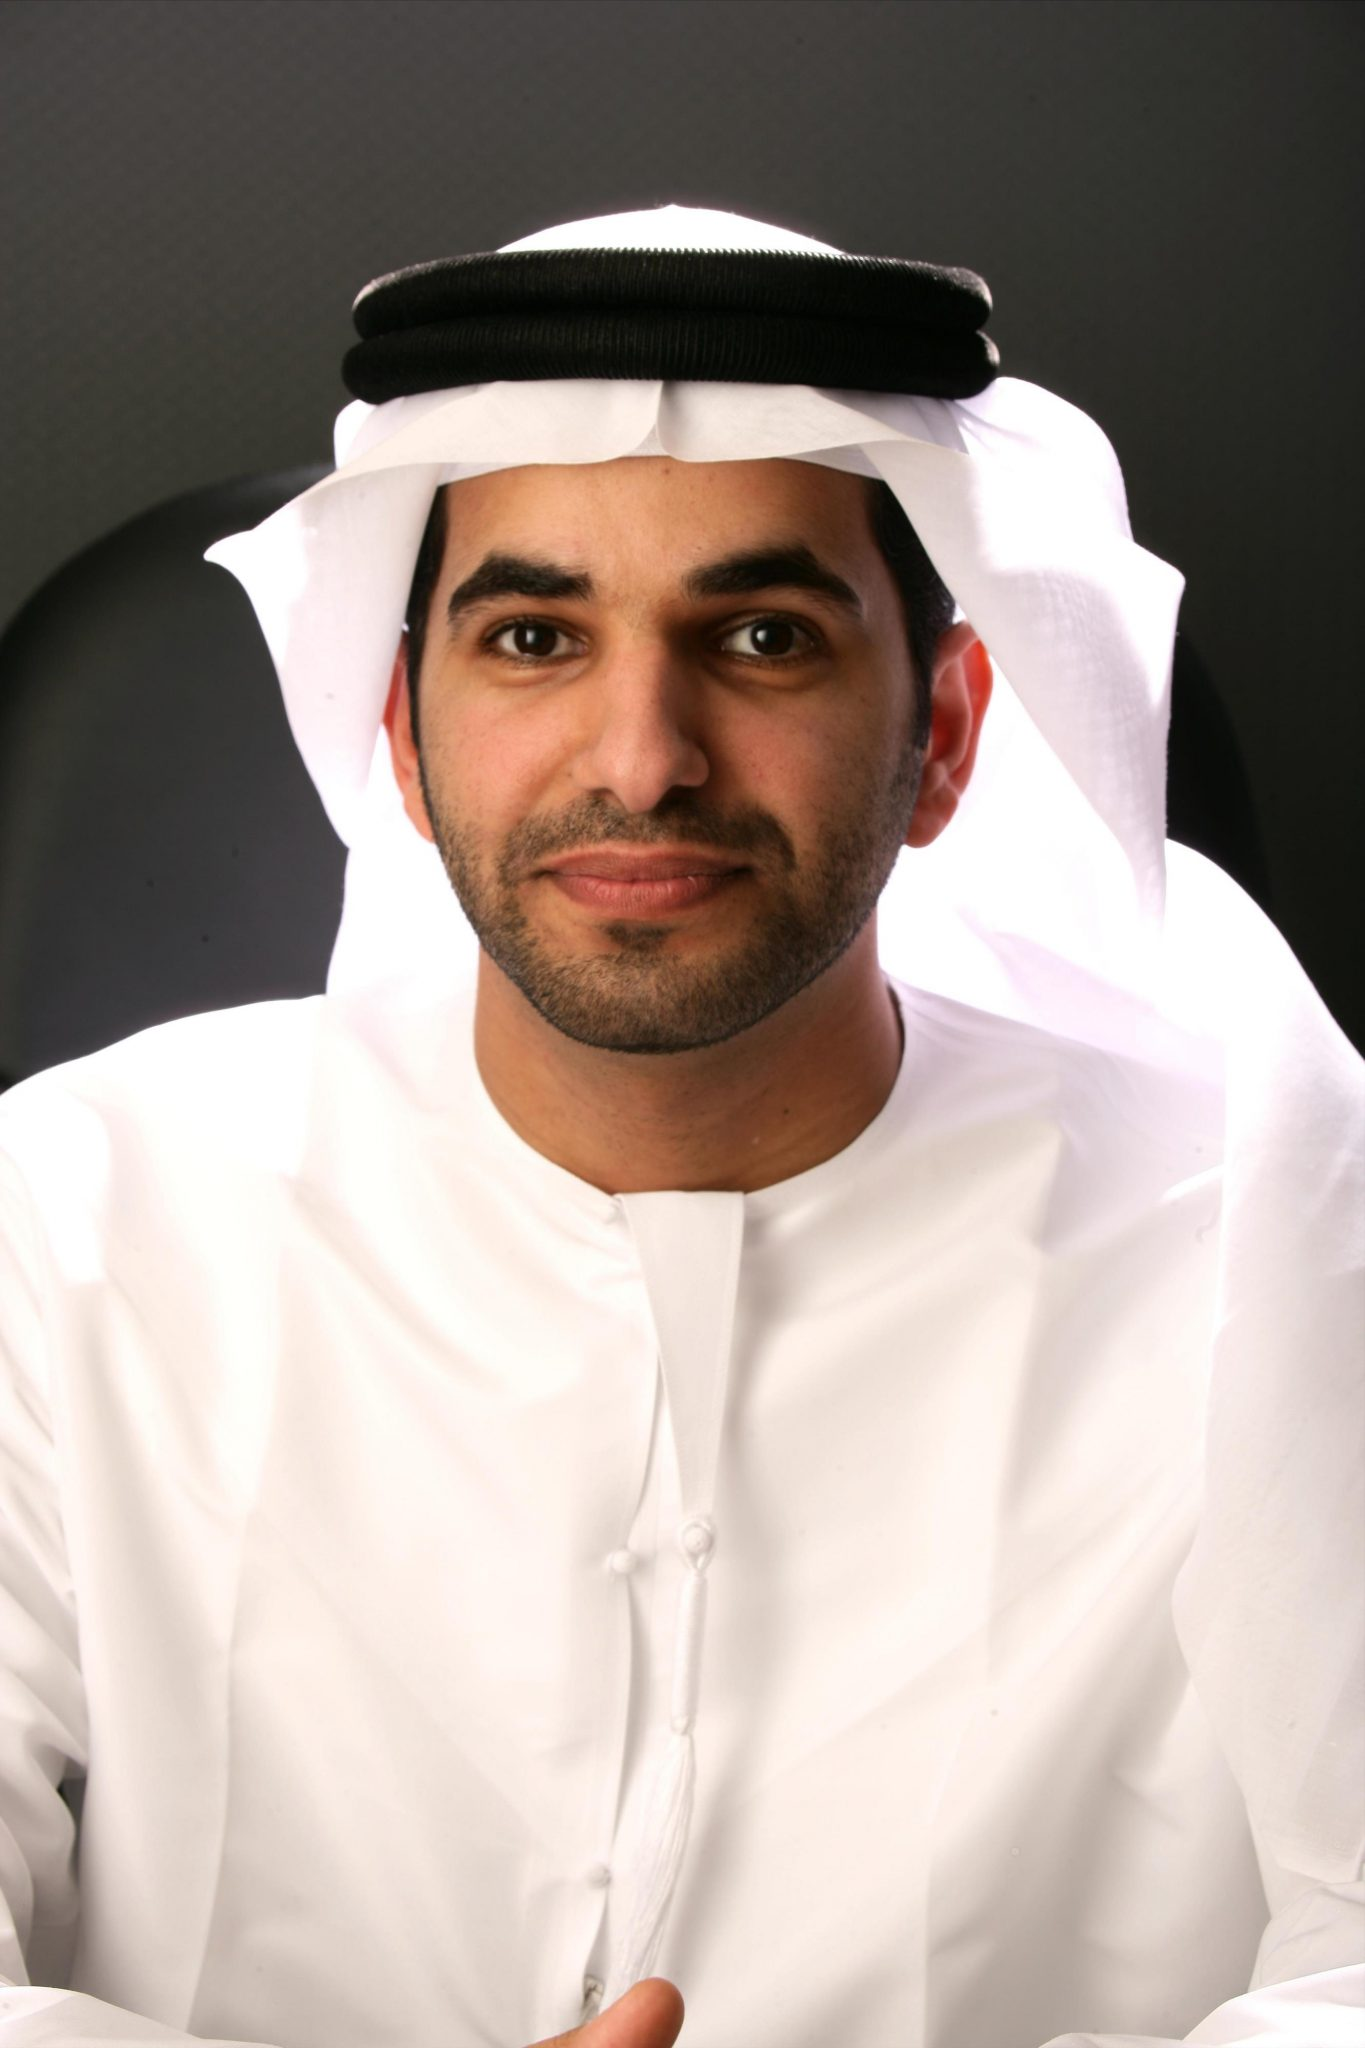 HAREB AL MUHAIRY is now Senior Vice President, UAE and GCC Sales